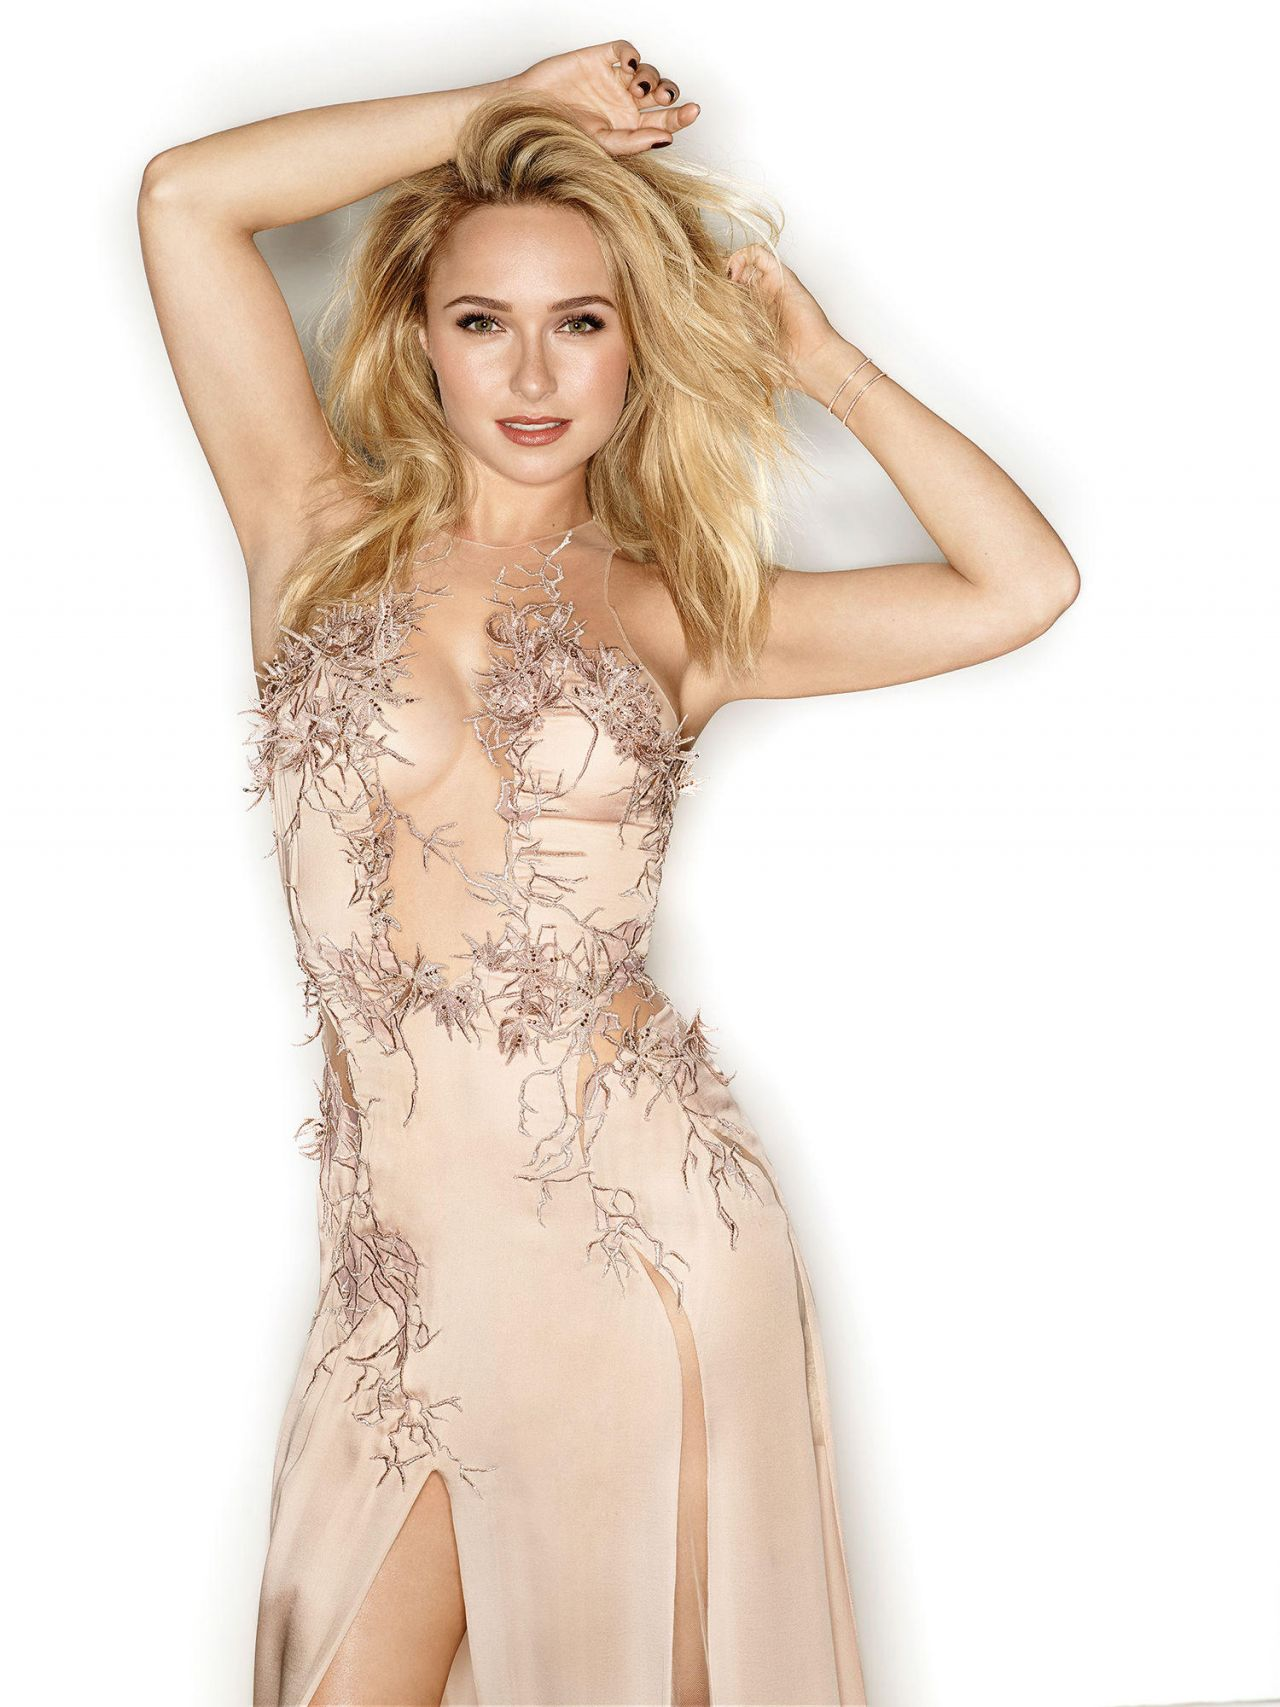 Hayden Panettiere - Cosmopolitan Magazine (UK) - April 2014 Issue